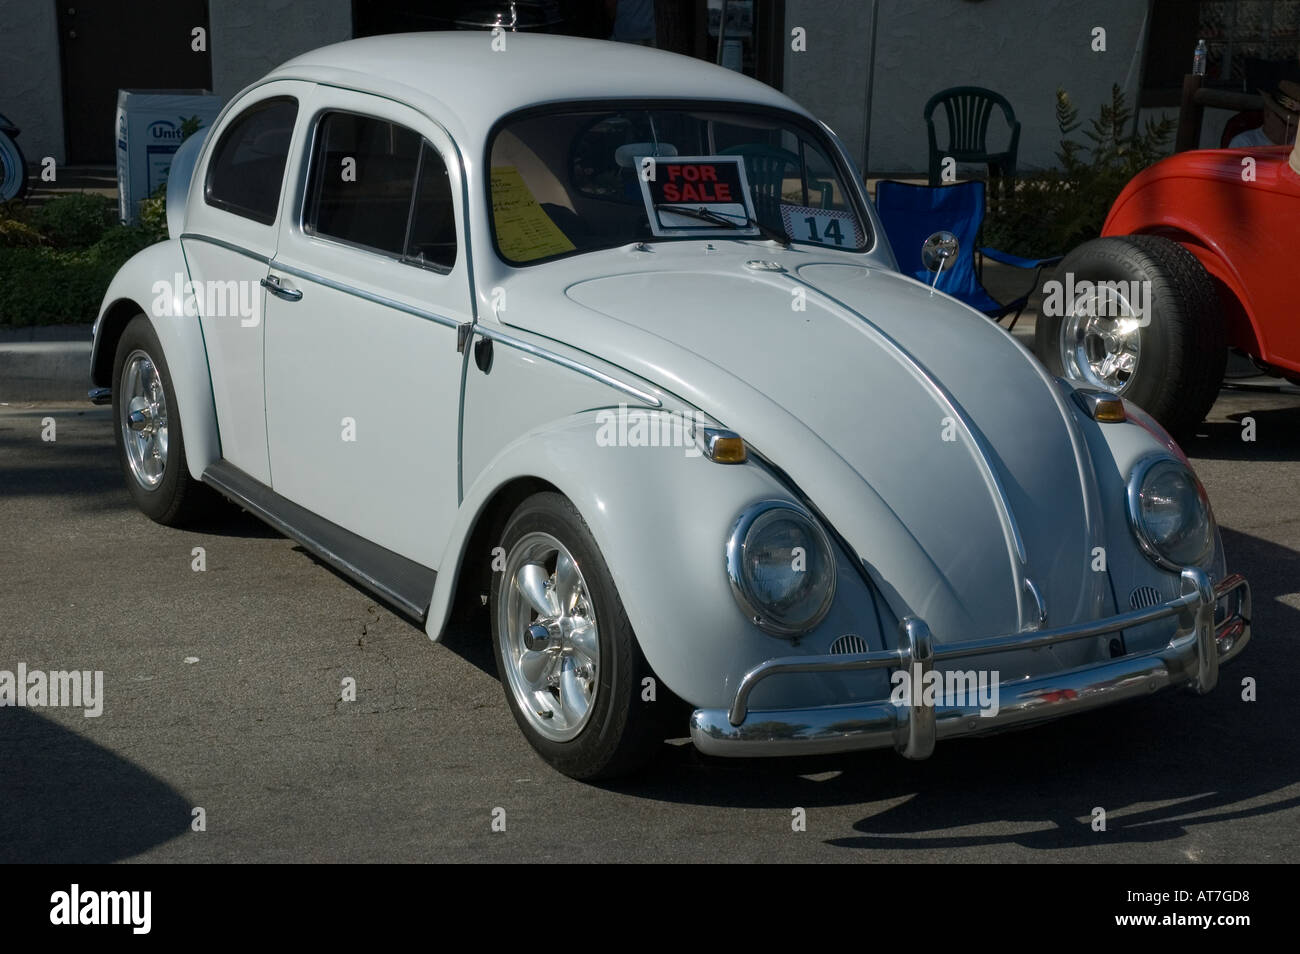 Los Angeles California Car Show Antique Customized Volkswagen VW Beetle 64  1964   Stock Image